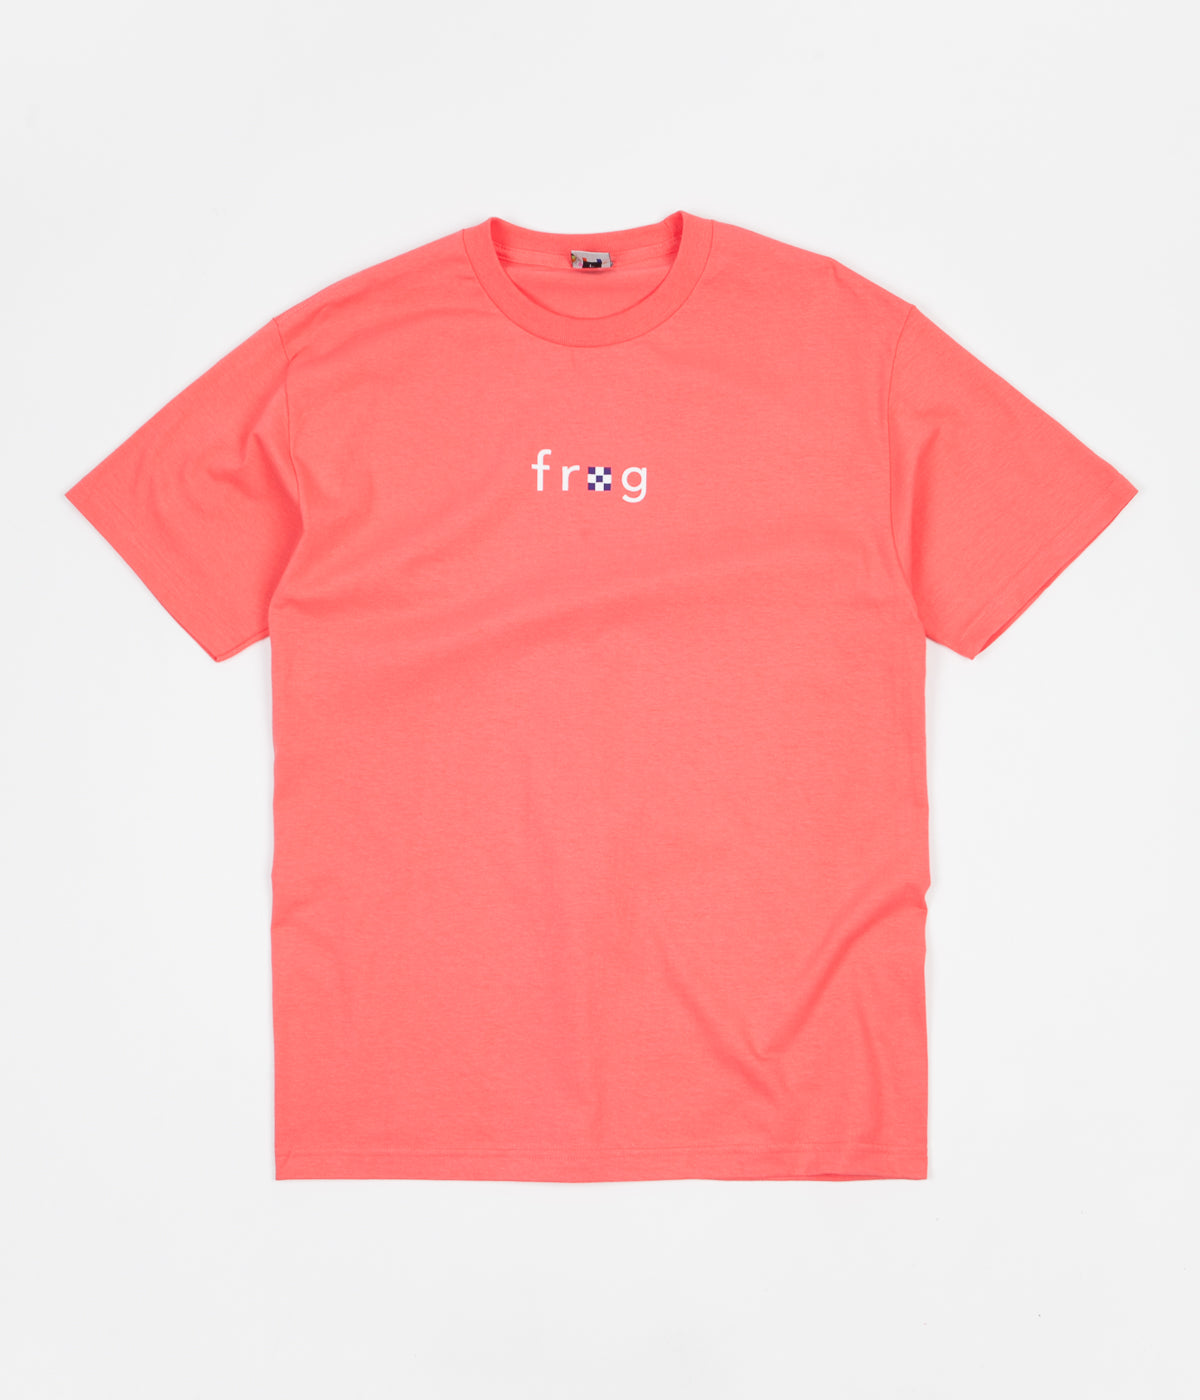 Frog Skateboards Please Don't Quit T-Shirt - Coral